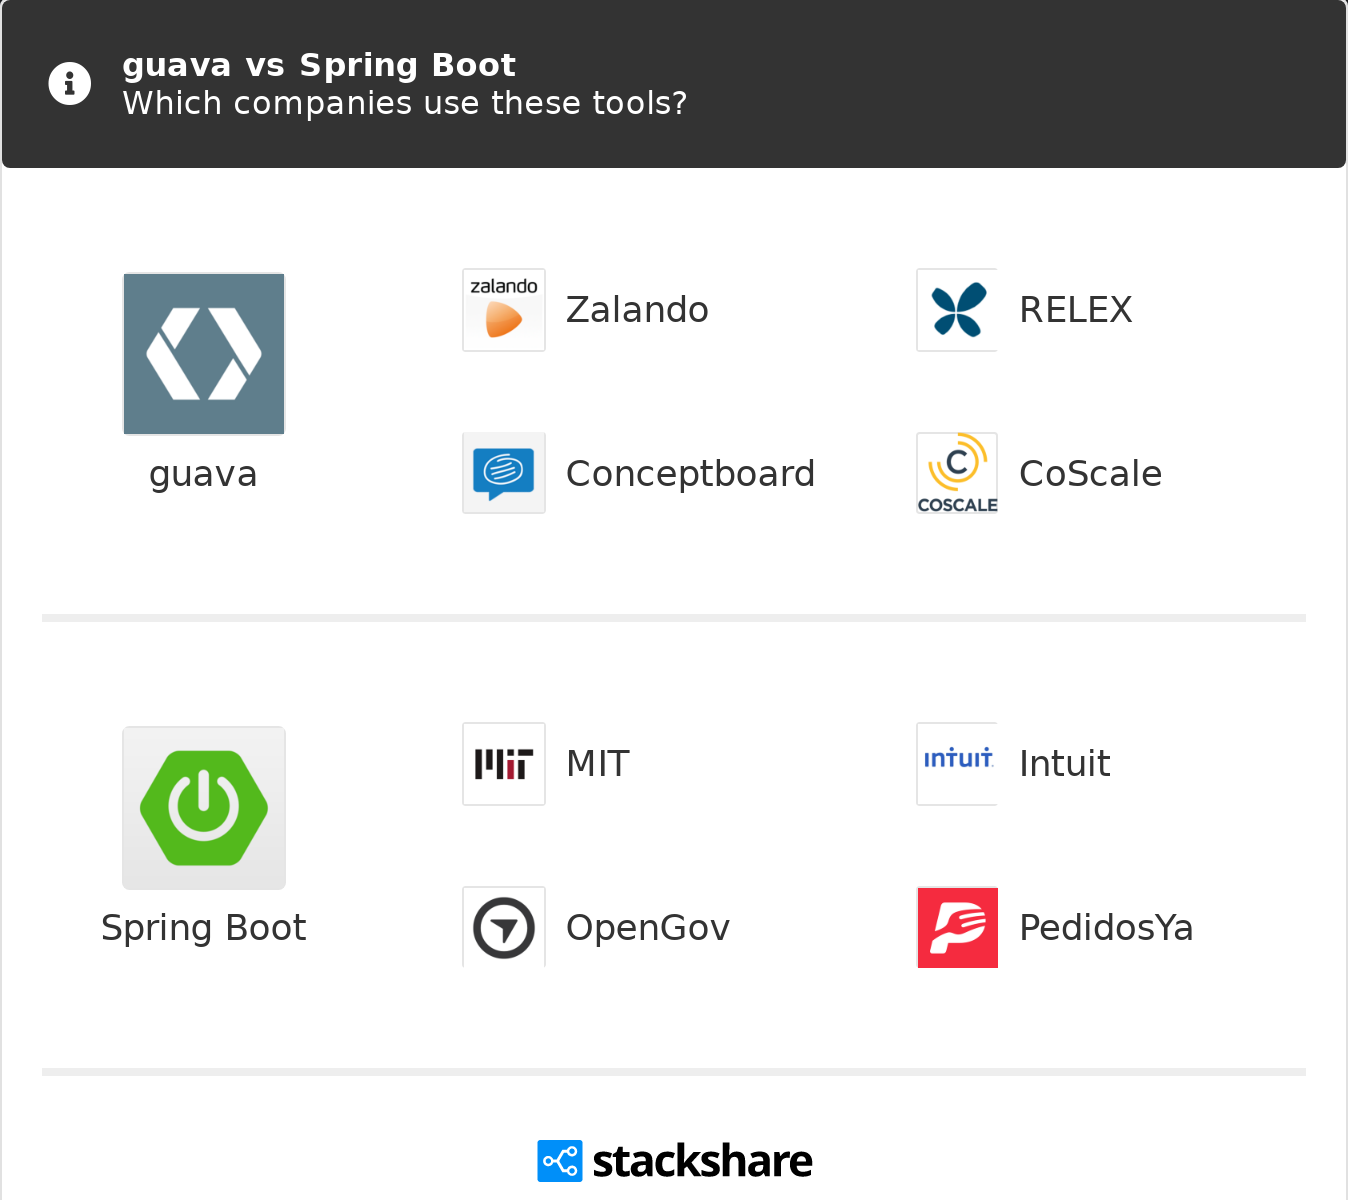 guava vs Spring Boot | What are the differences?